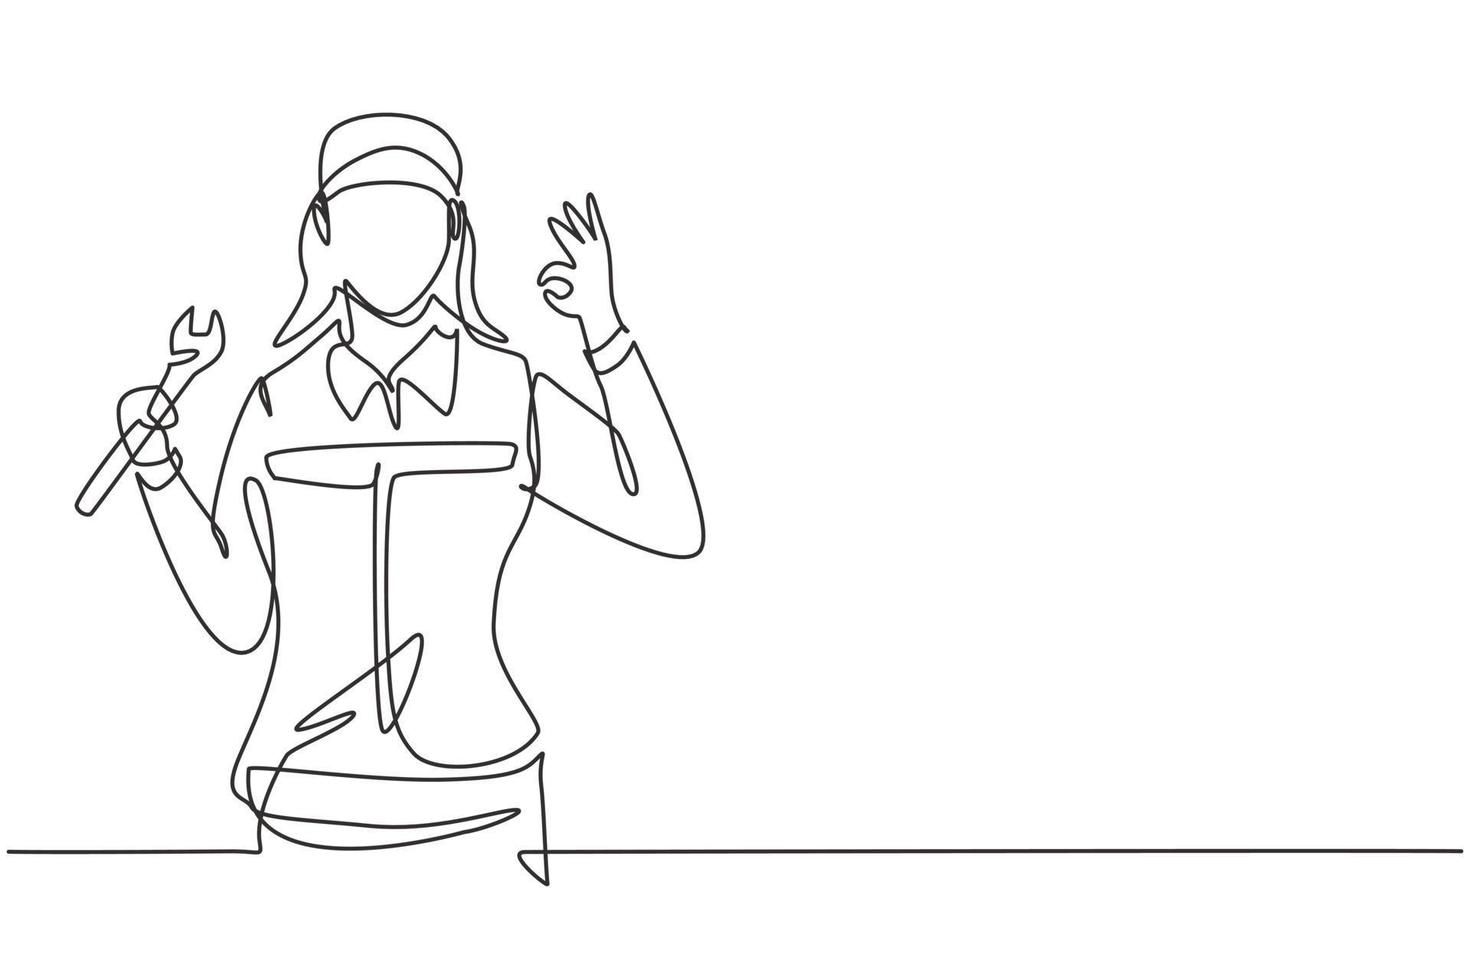 Continuous one line drawing female mechanic with gesture okay and holding wrench works to fix broken car engine in garage. Success business concept. Single line draw design vector graphic illustration